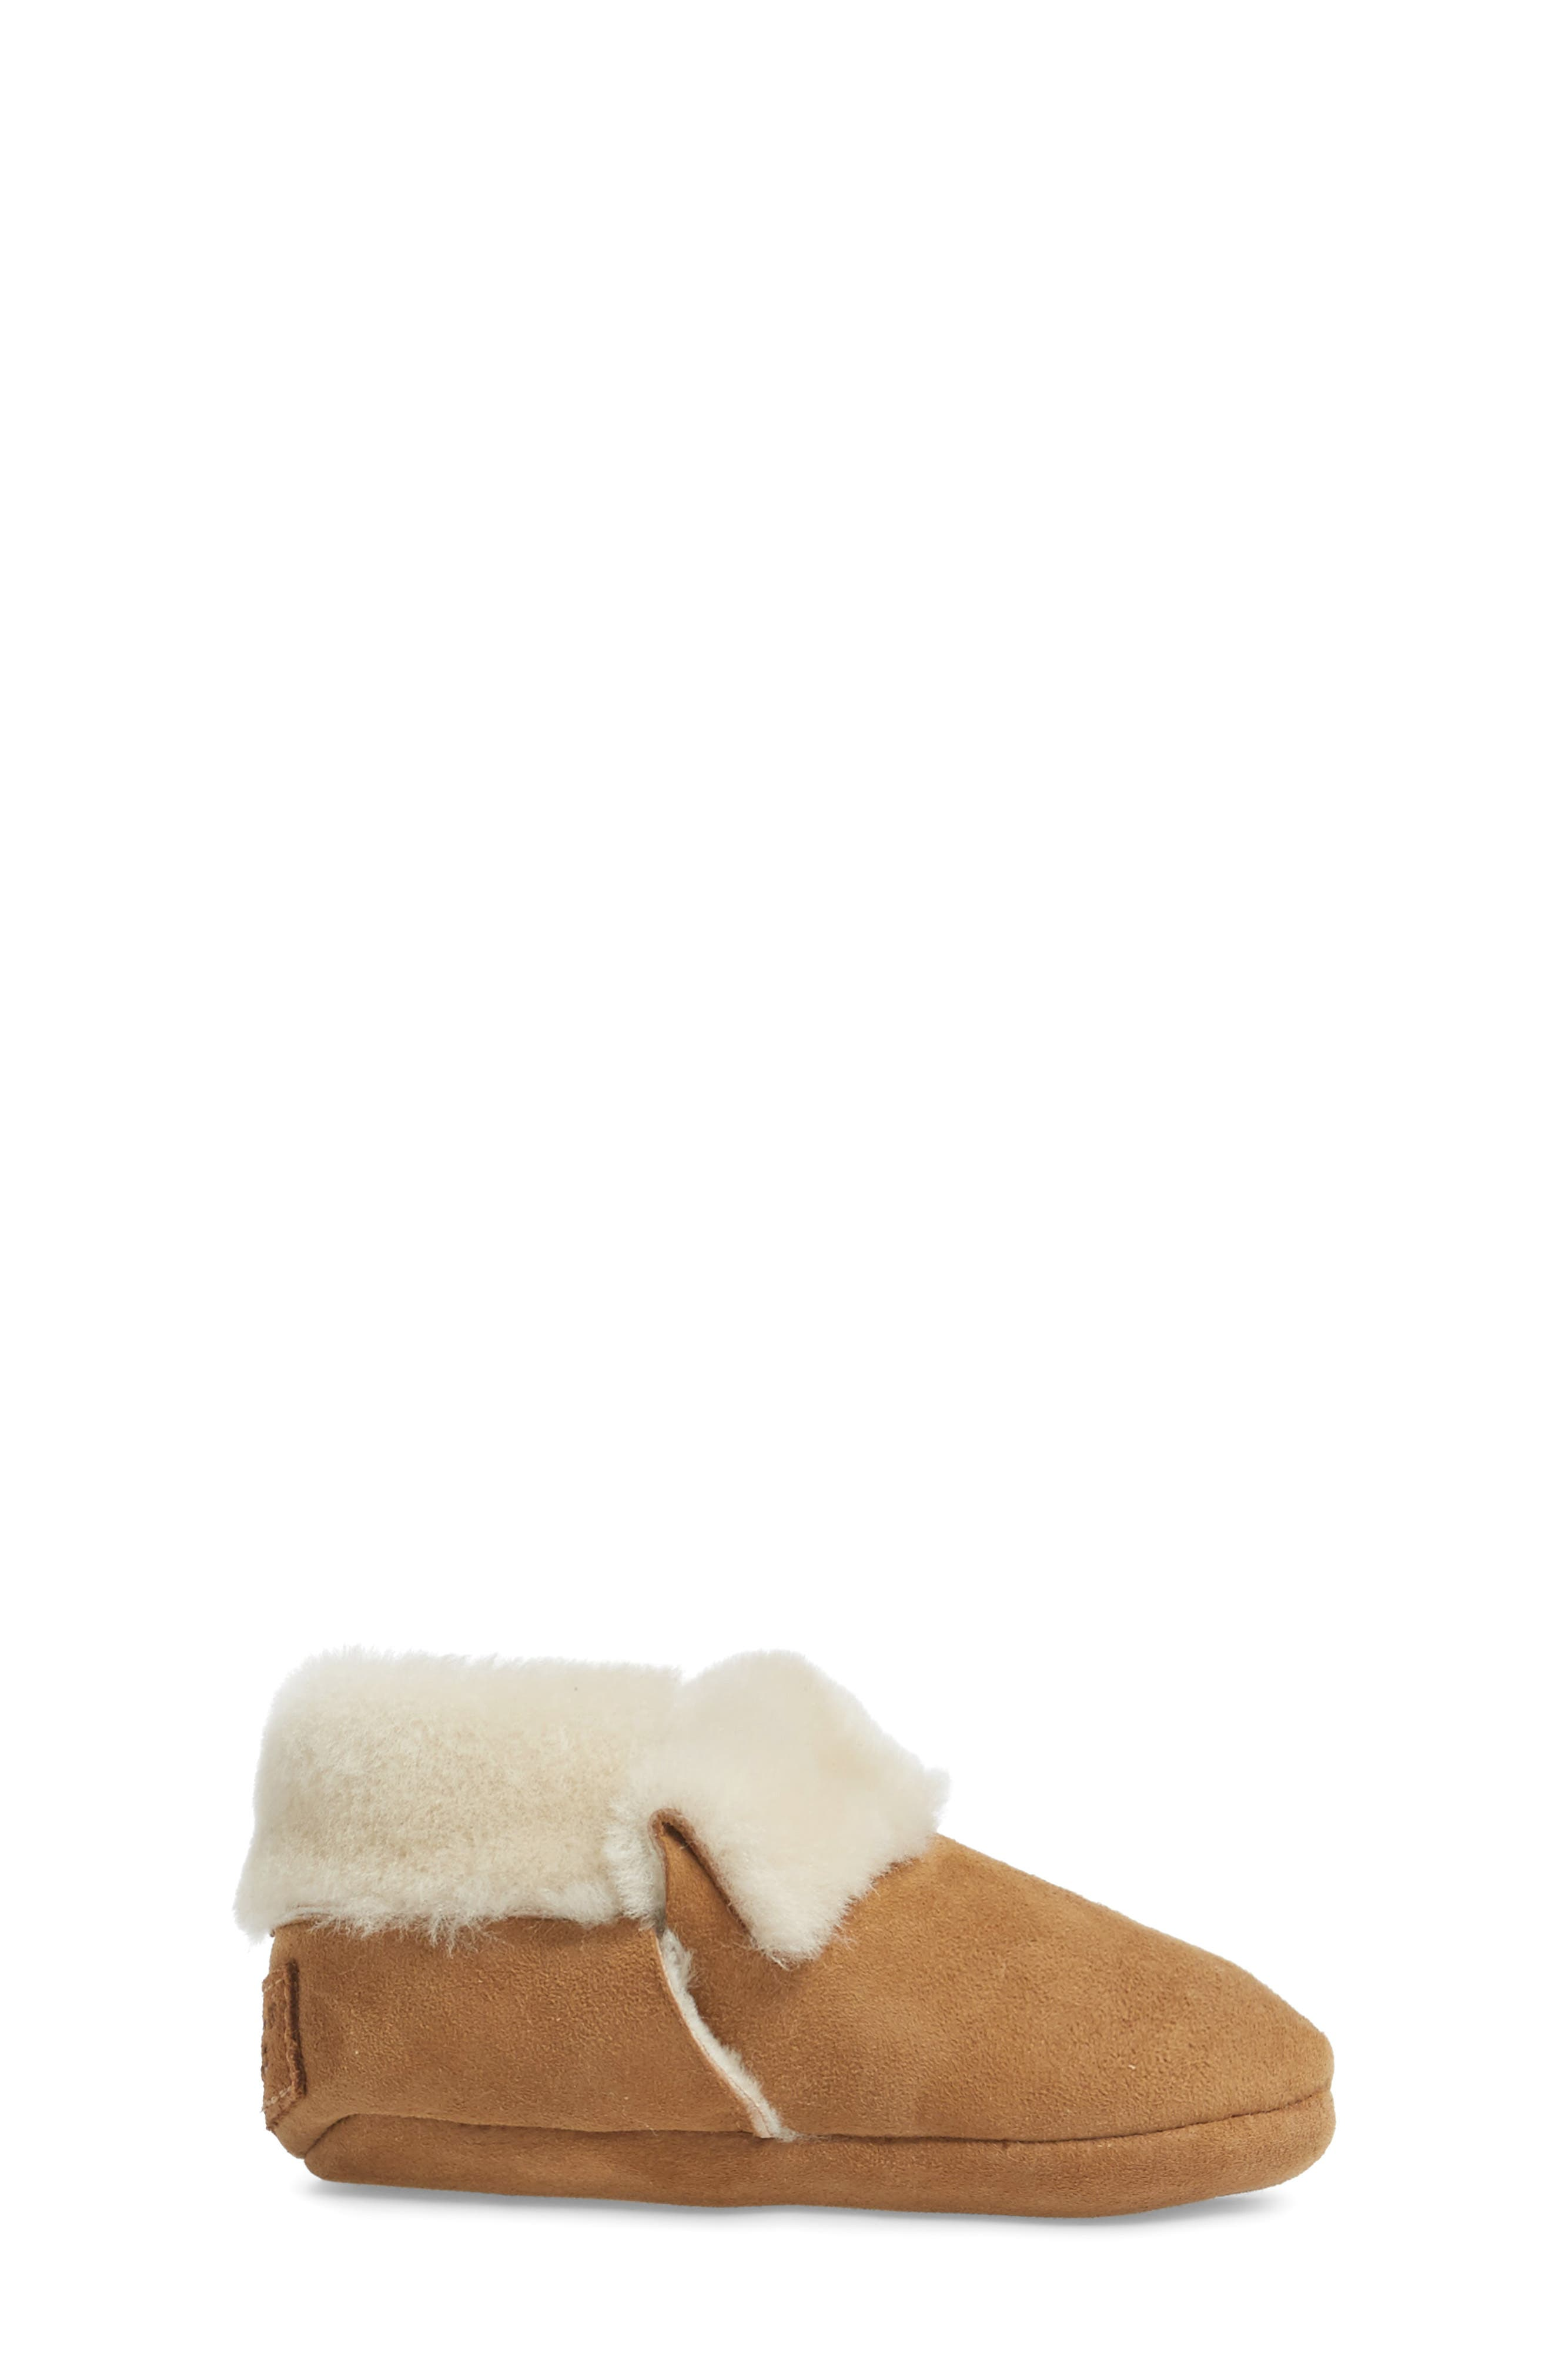 Solvi Genuine Shearling Low Cuffed Bootie,                             Alternate thumbnail 3, color,                             200